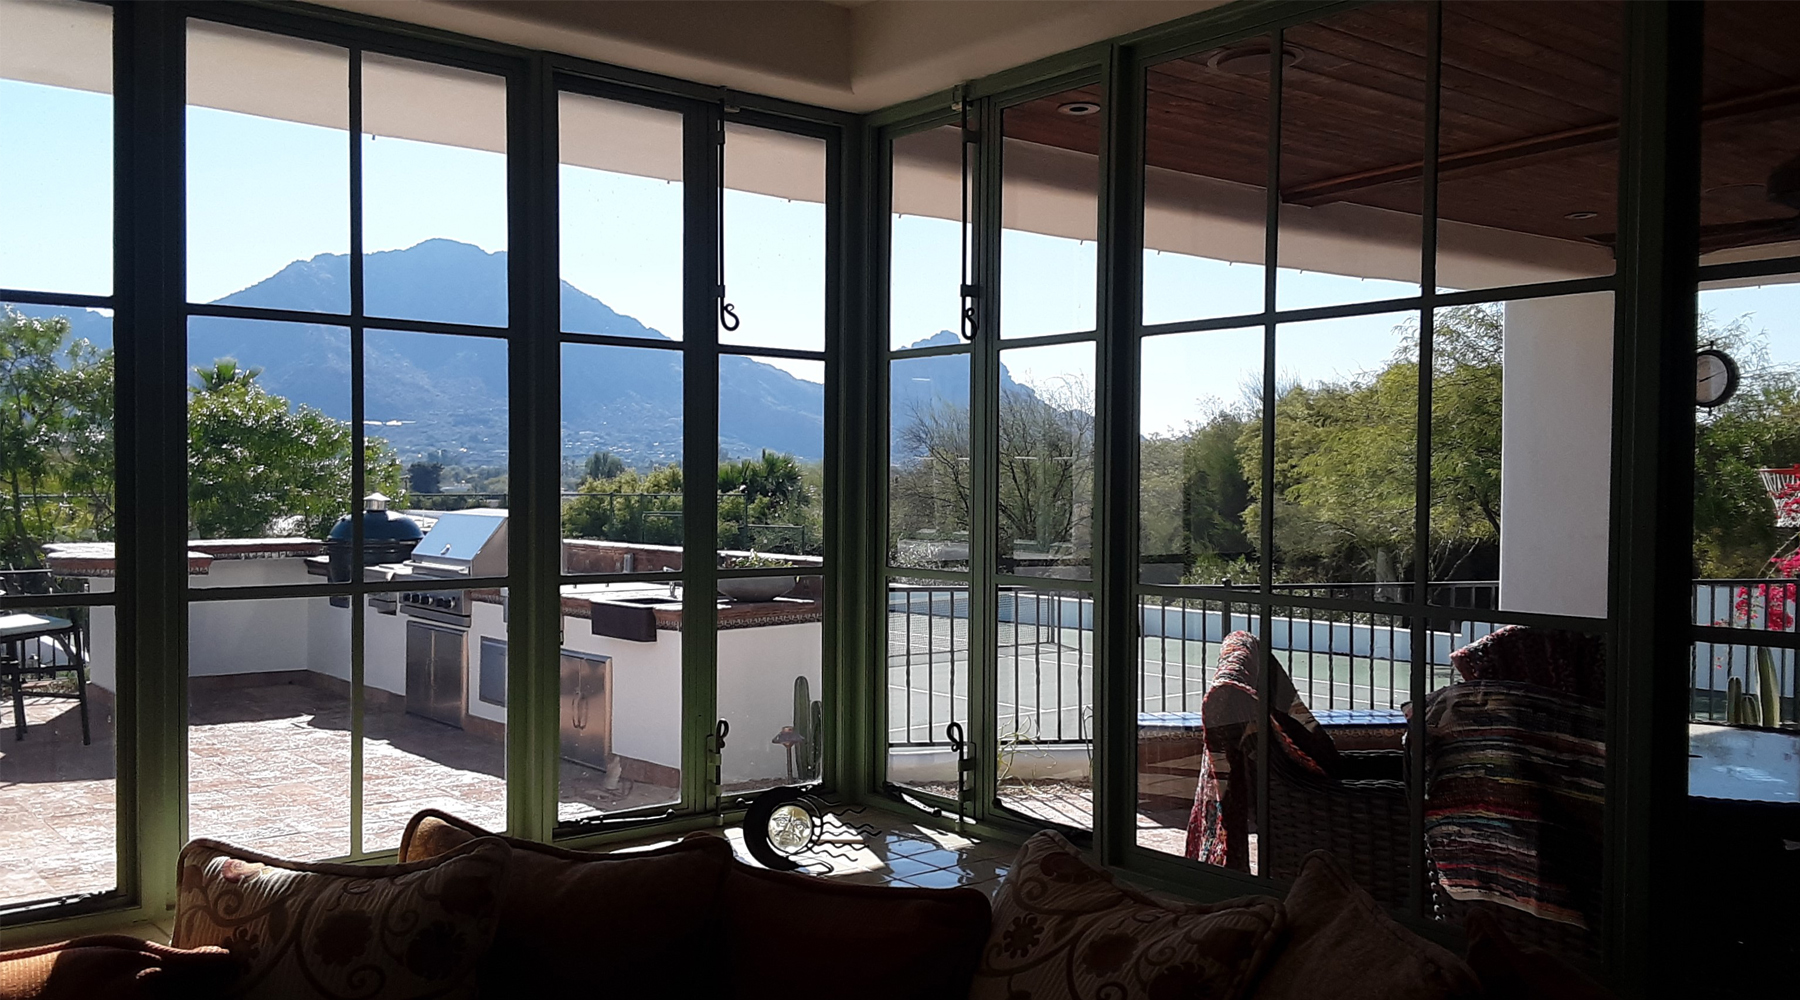 Tips for Getting Your Windows Sparkling Clean